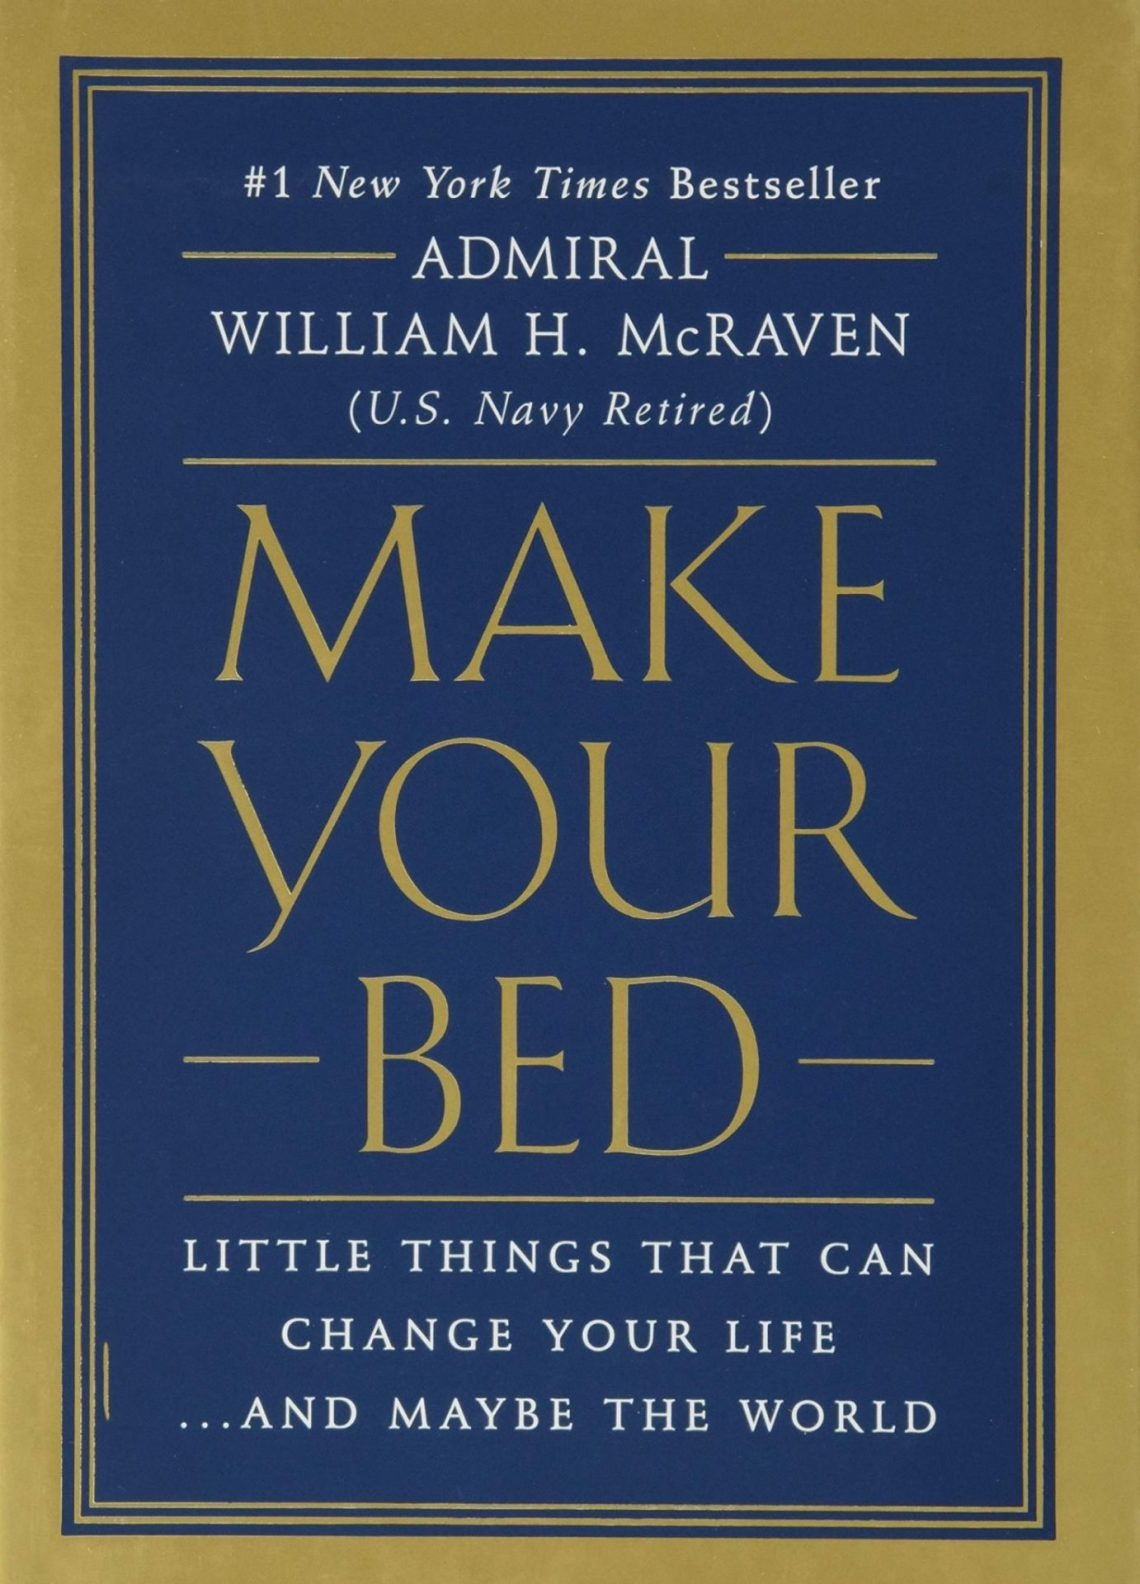 Make your bed one of motivational books